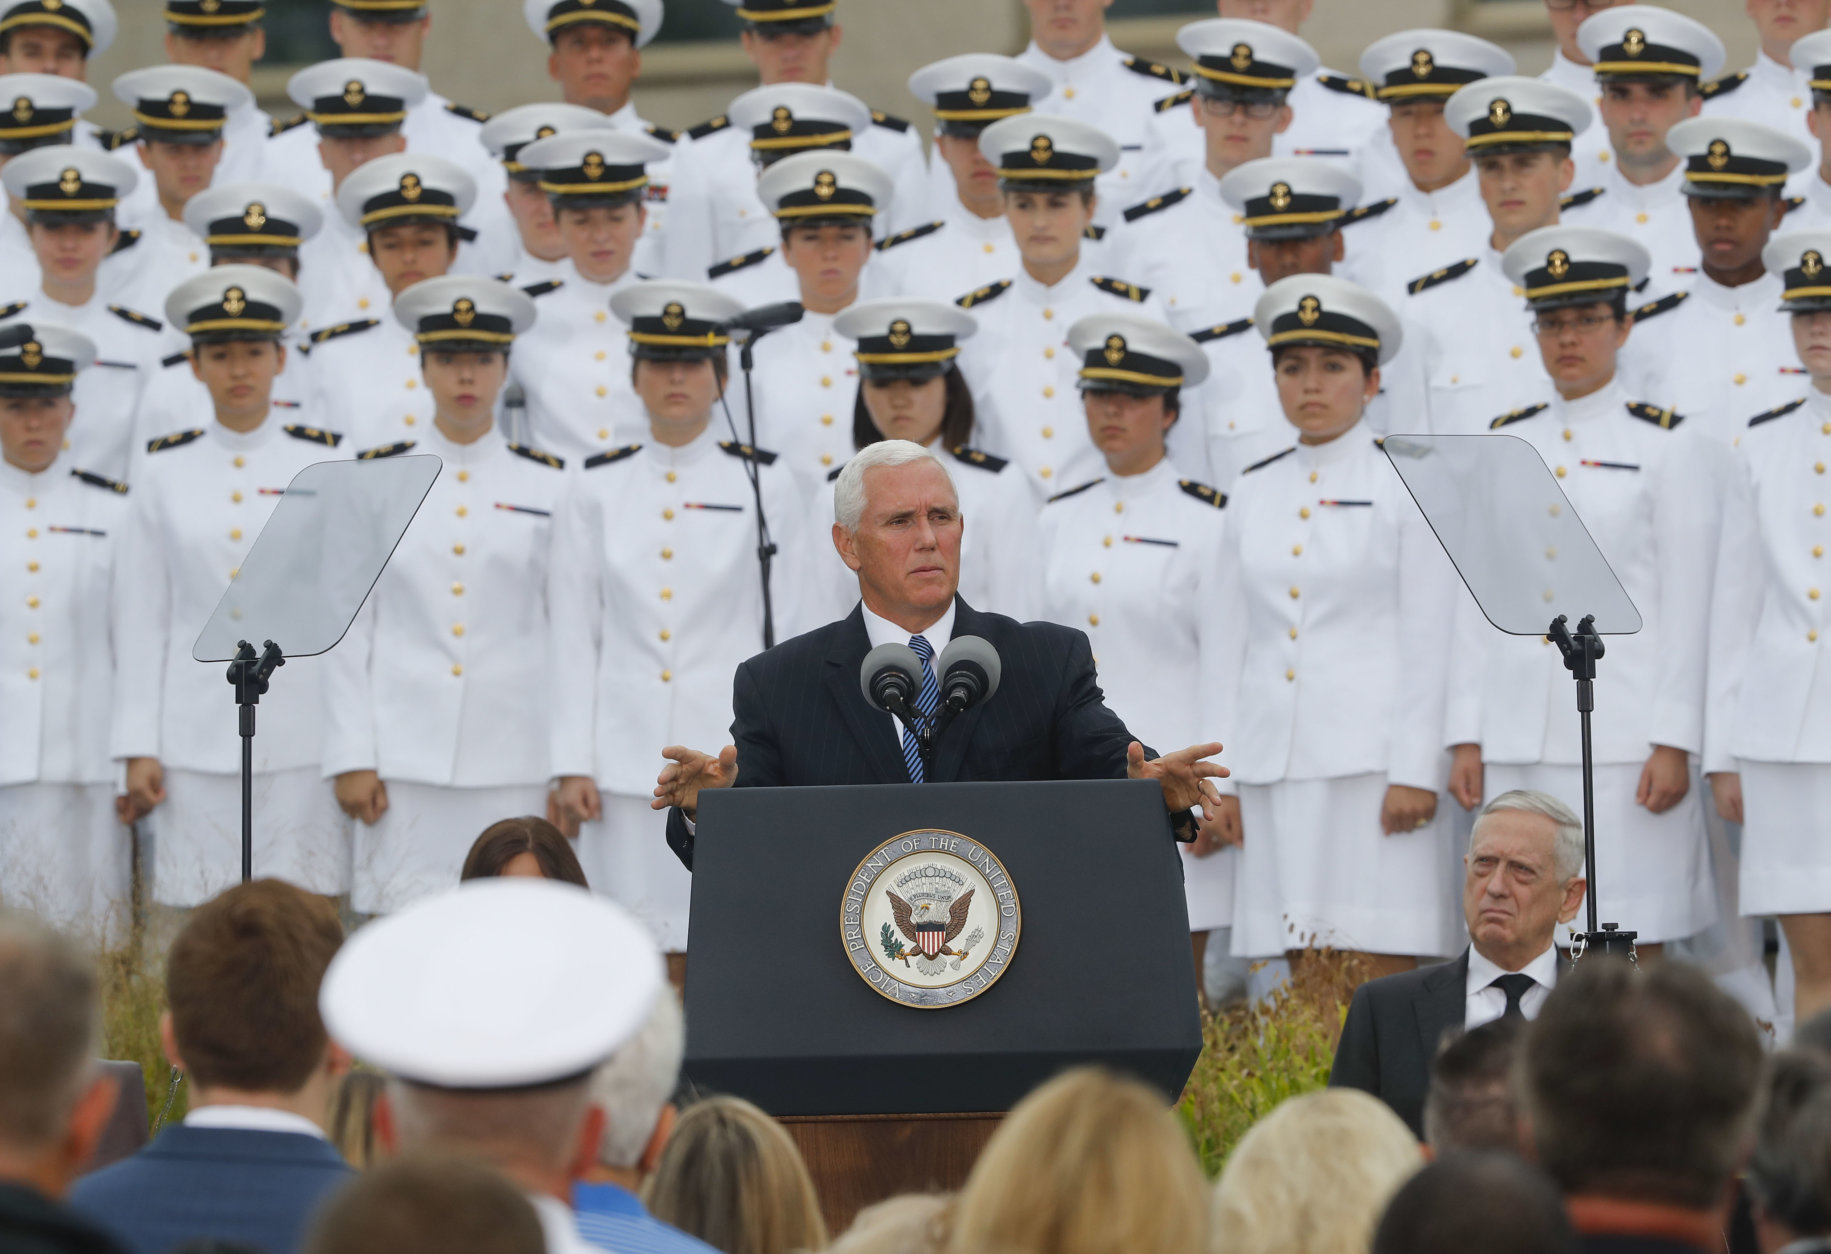 Vice President Mike Pence, center, speaks during the September 11th Pentagon Memorial Observance at the Pentagon on the 17th anniversary of the September 11th attacks, Tuesday, Sept. 11, 2018. Also on stage is Defense Secretary Jame Mattis, right. (AP Photo/Pablo Martinez Monsivais)